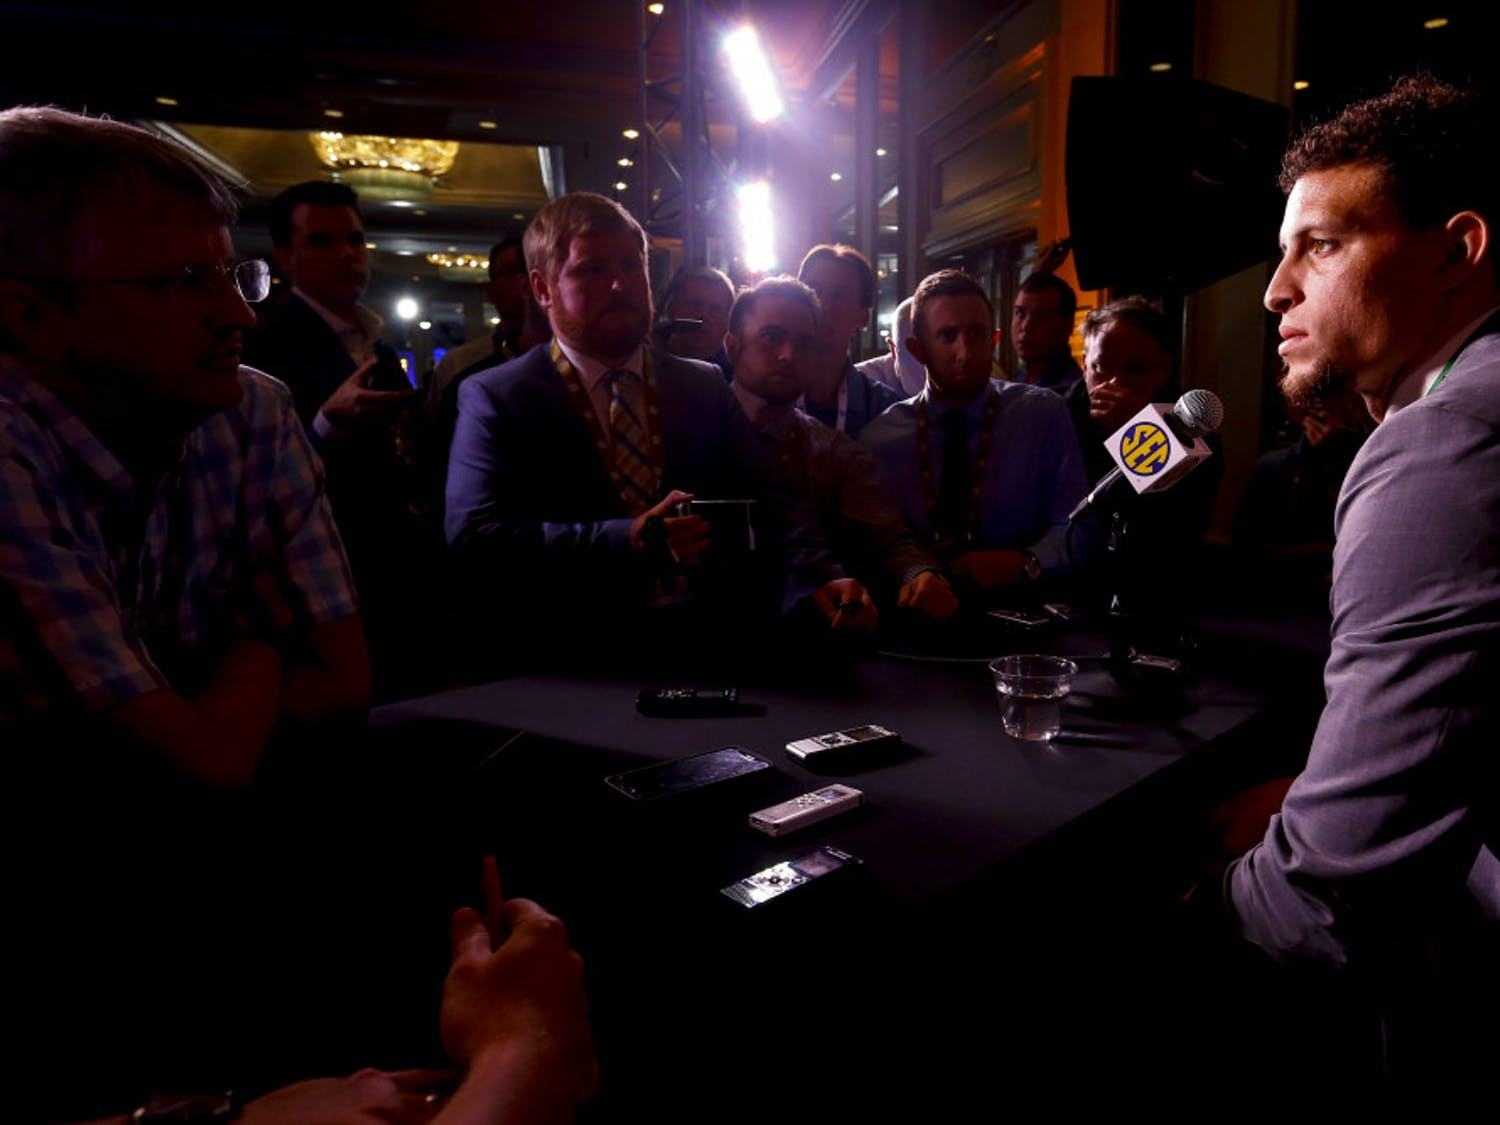 Quarterback Feleipe Franks (pictured), running back Lamical Perine and defensive end Jabari Zuniga were the three UF athletes to appear at the SEC Media Days on Monday alongside coach Dan Mullen.